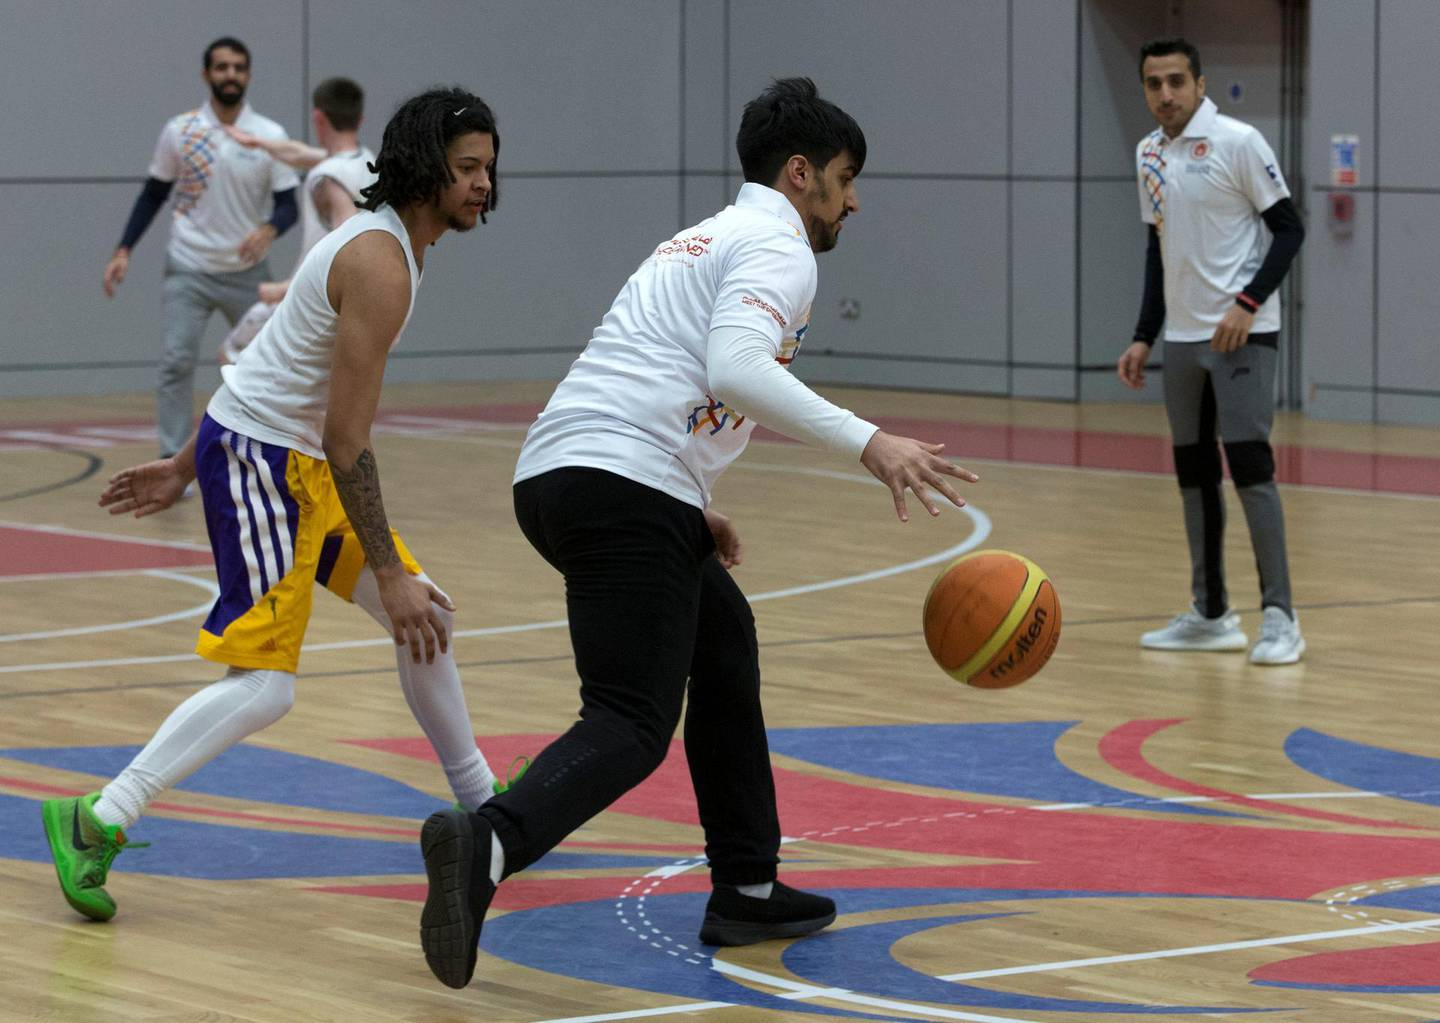 SHEFFIELD,UNITED KINGDOM. 19th January 2019. Members of a UAE Embassy delegation from London, take part in a game of basketball with athletes from the  Special Olympics-GB Team , during a visit to a training camp in Sheffield, United Kingdom, ahead of the Special Olympics World Games 2019 in Abu Dhabi. Stephen Lock for the National